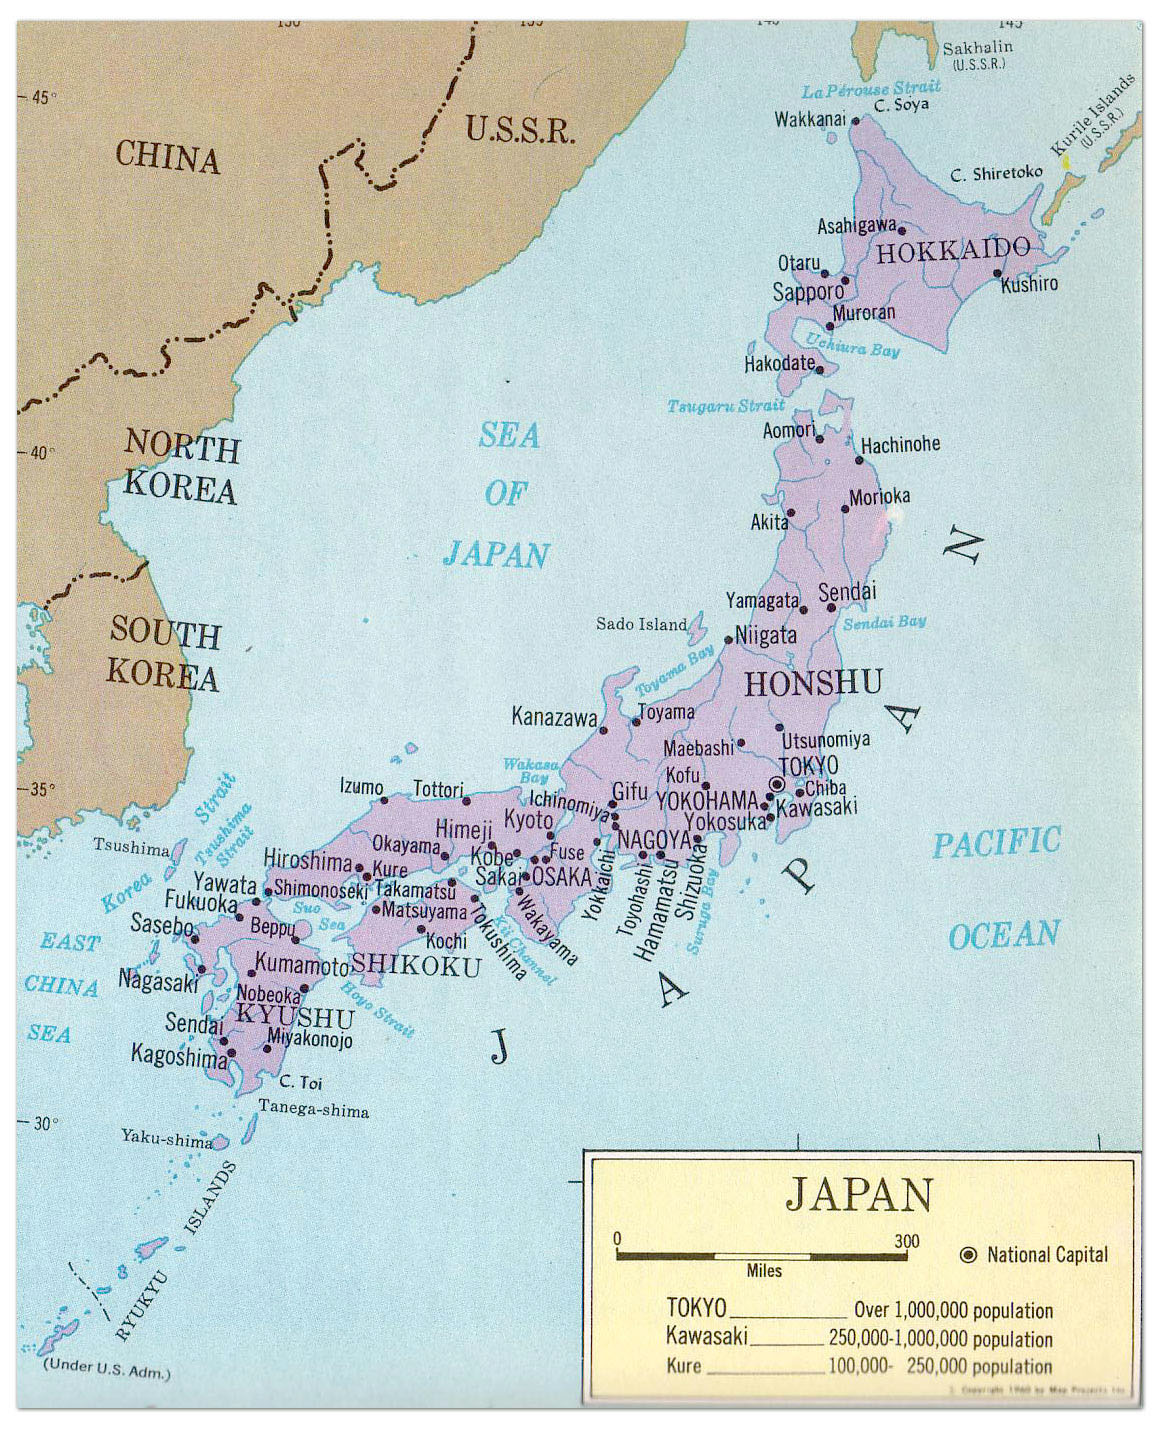 Big Map Of Asia.Large Political Map Of Japan With Major Cities 1965 Japan Asia